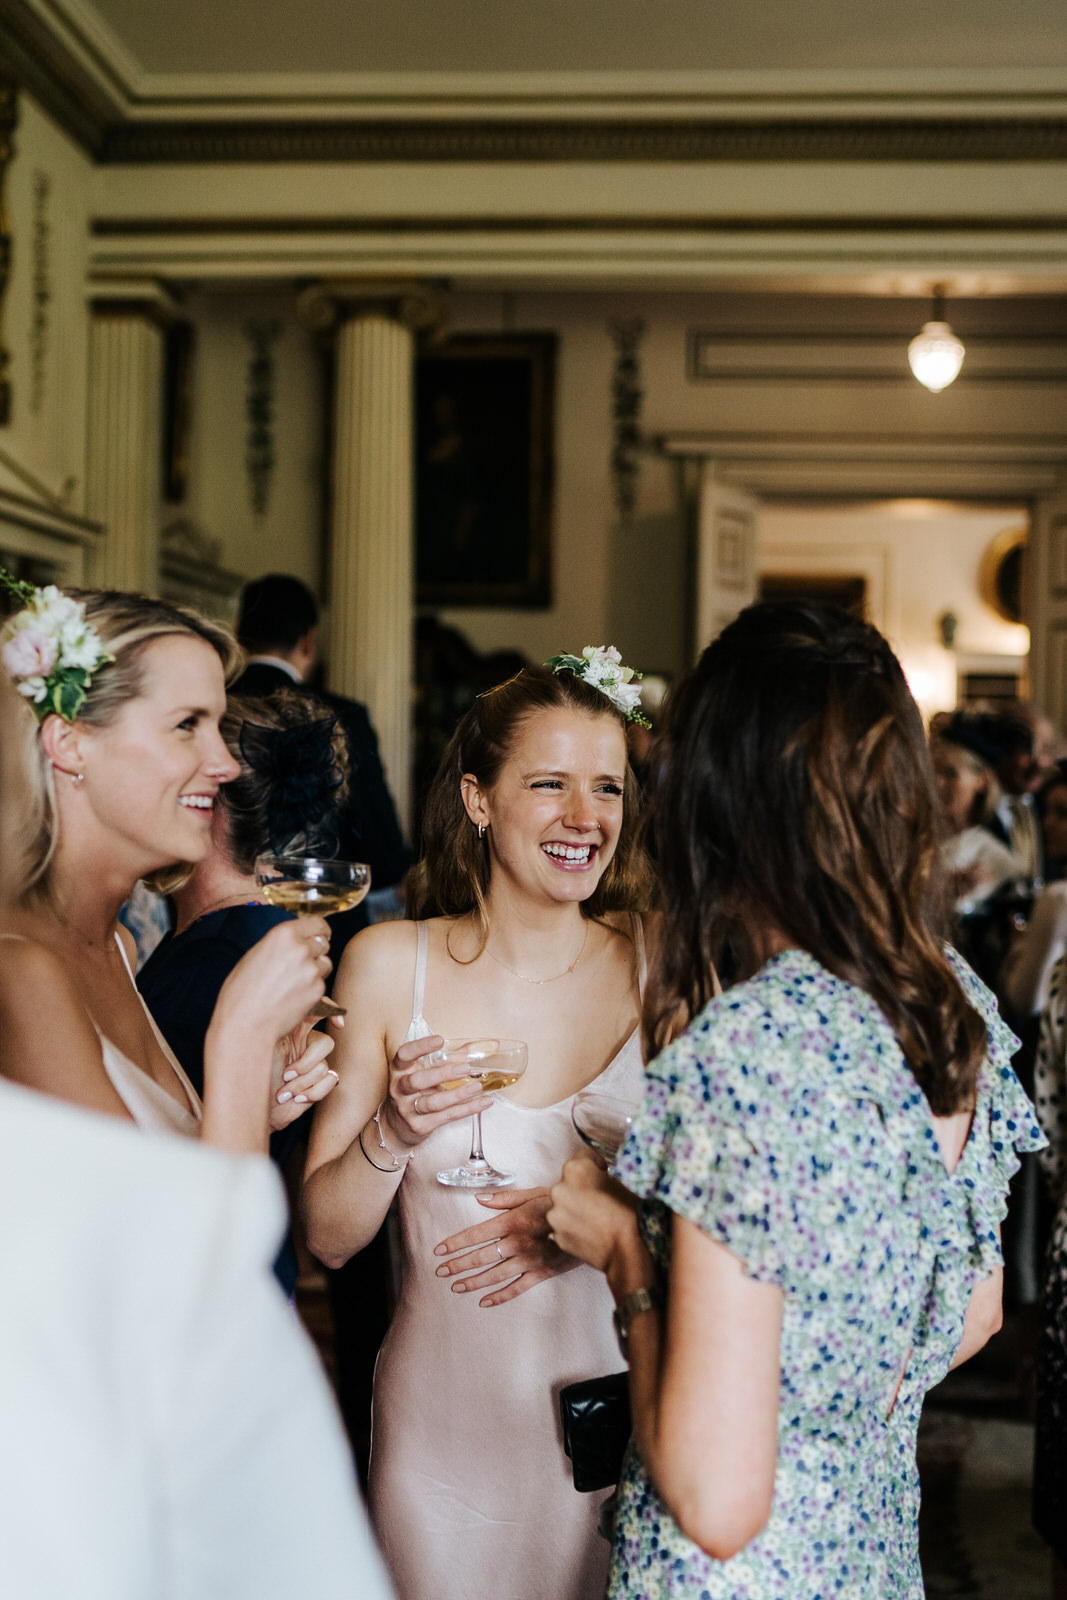 Bride's two sisters talk to a friend during the champagne reception